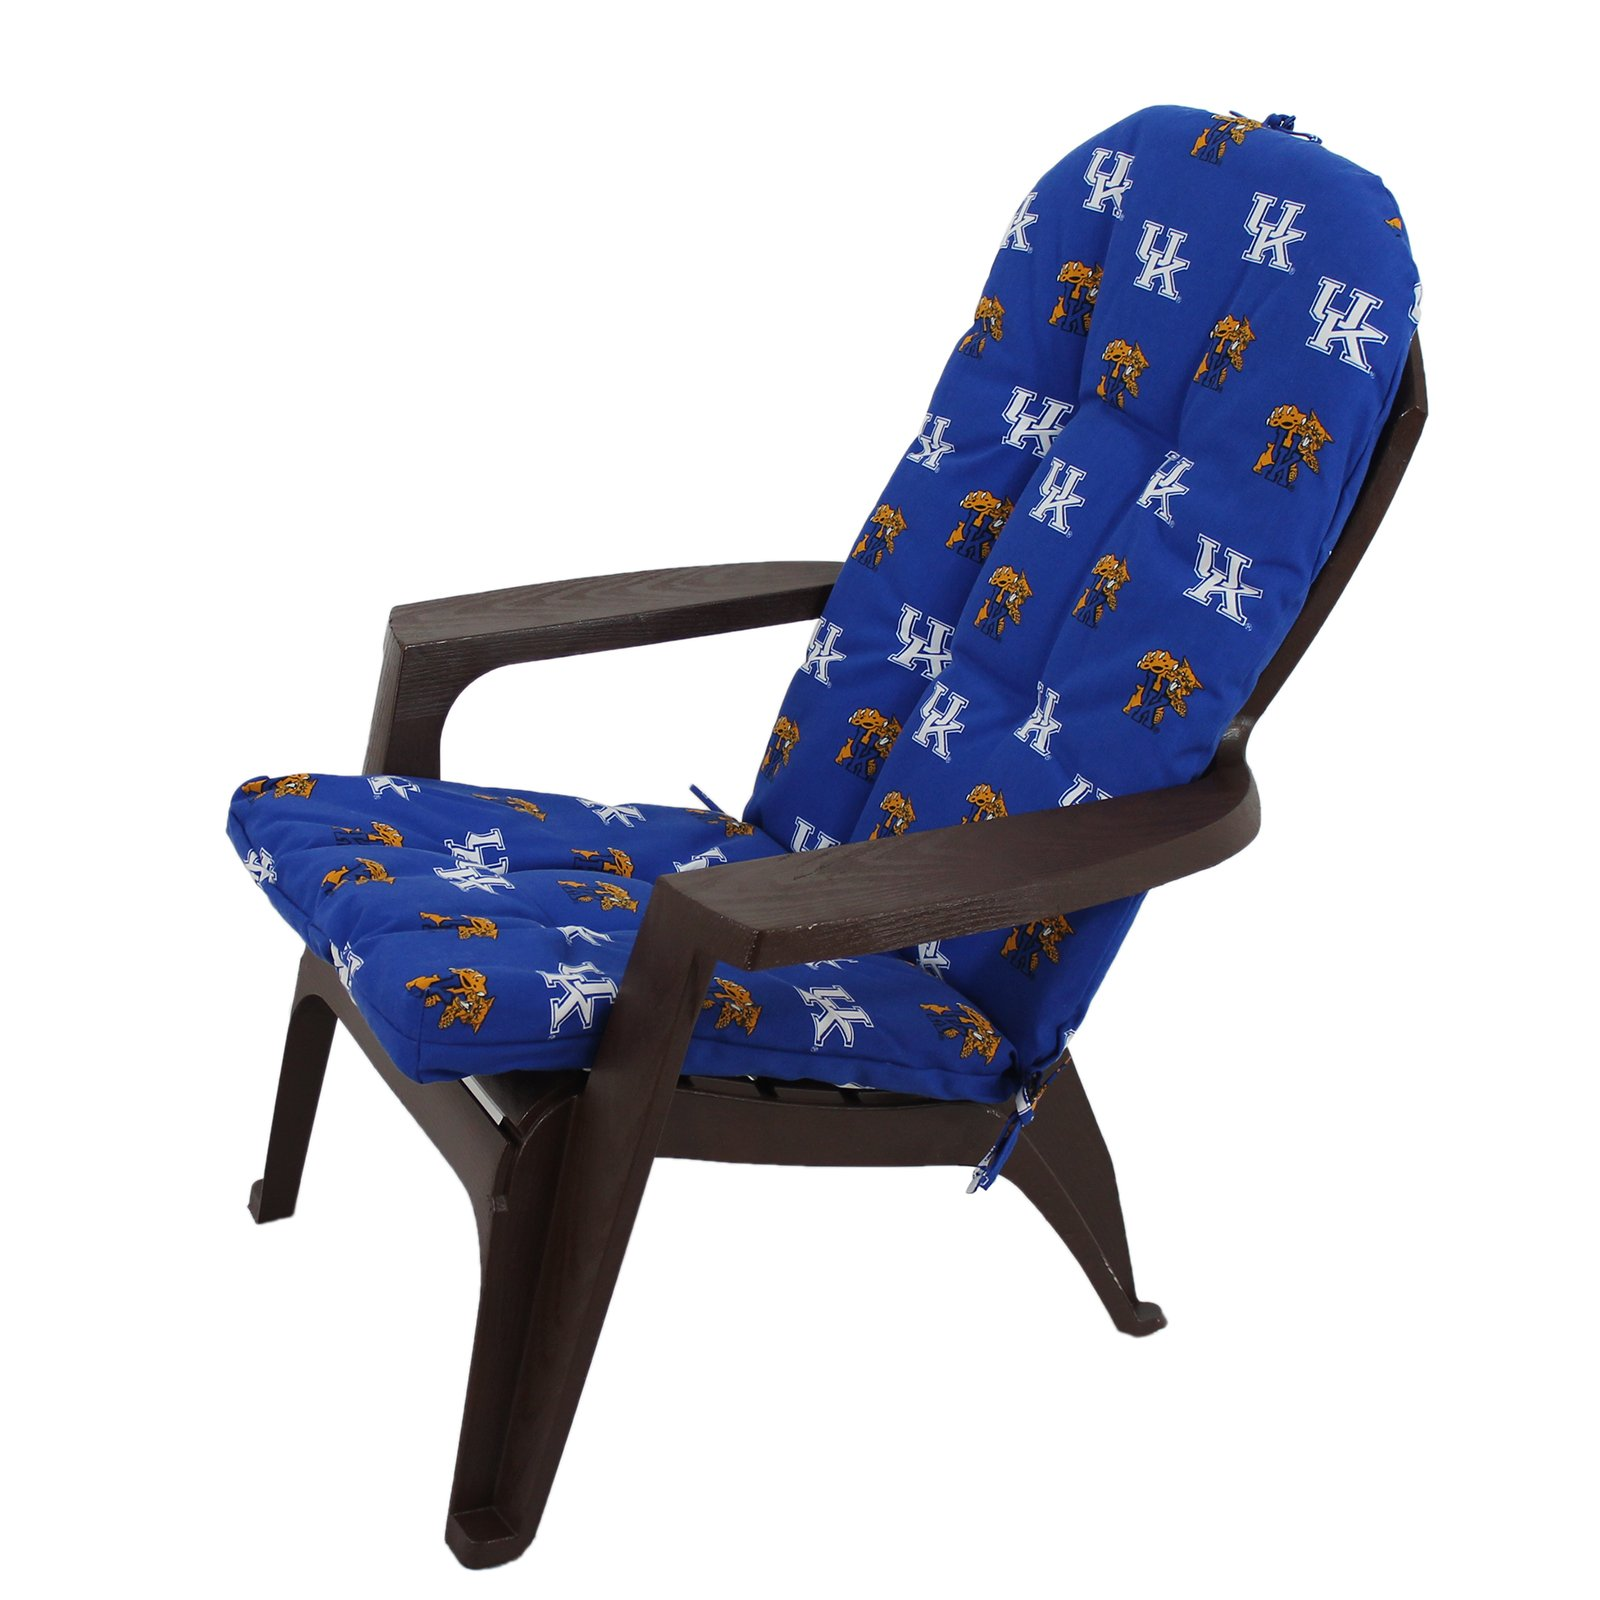 College Covers Kentucky Wildcats Adirondack Cushion by College Covers (Image #2)